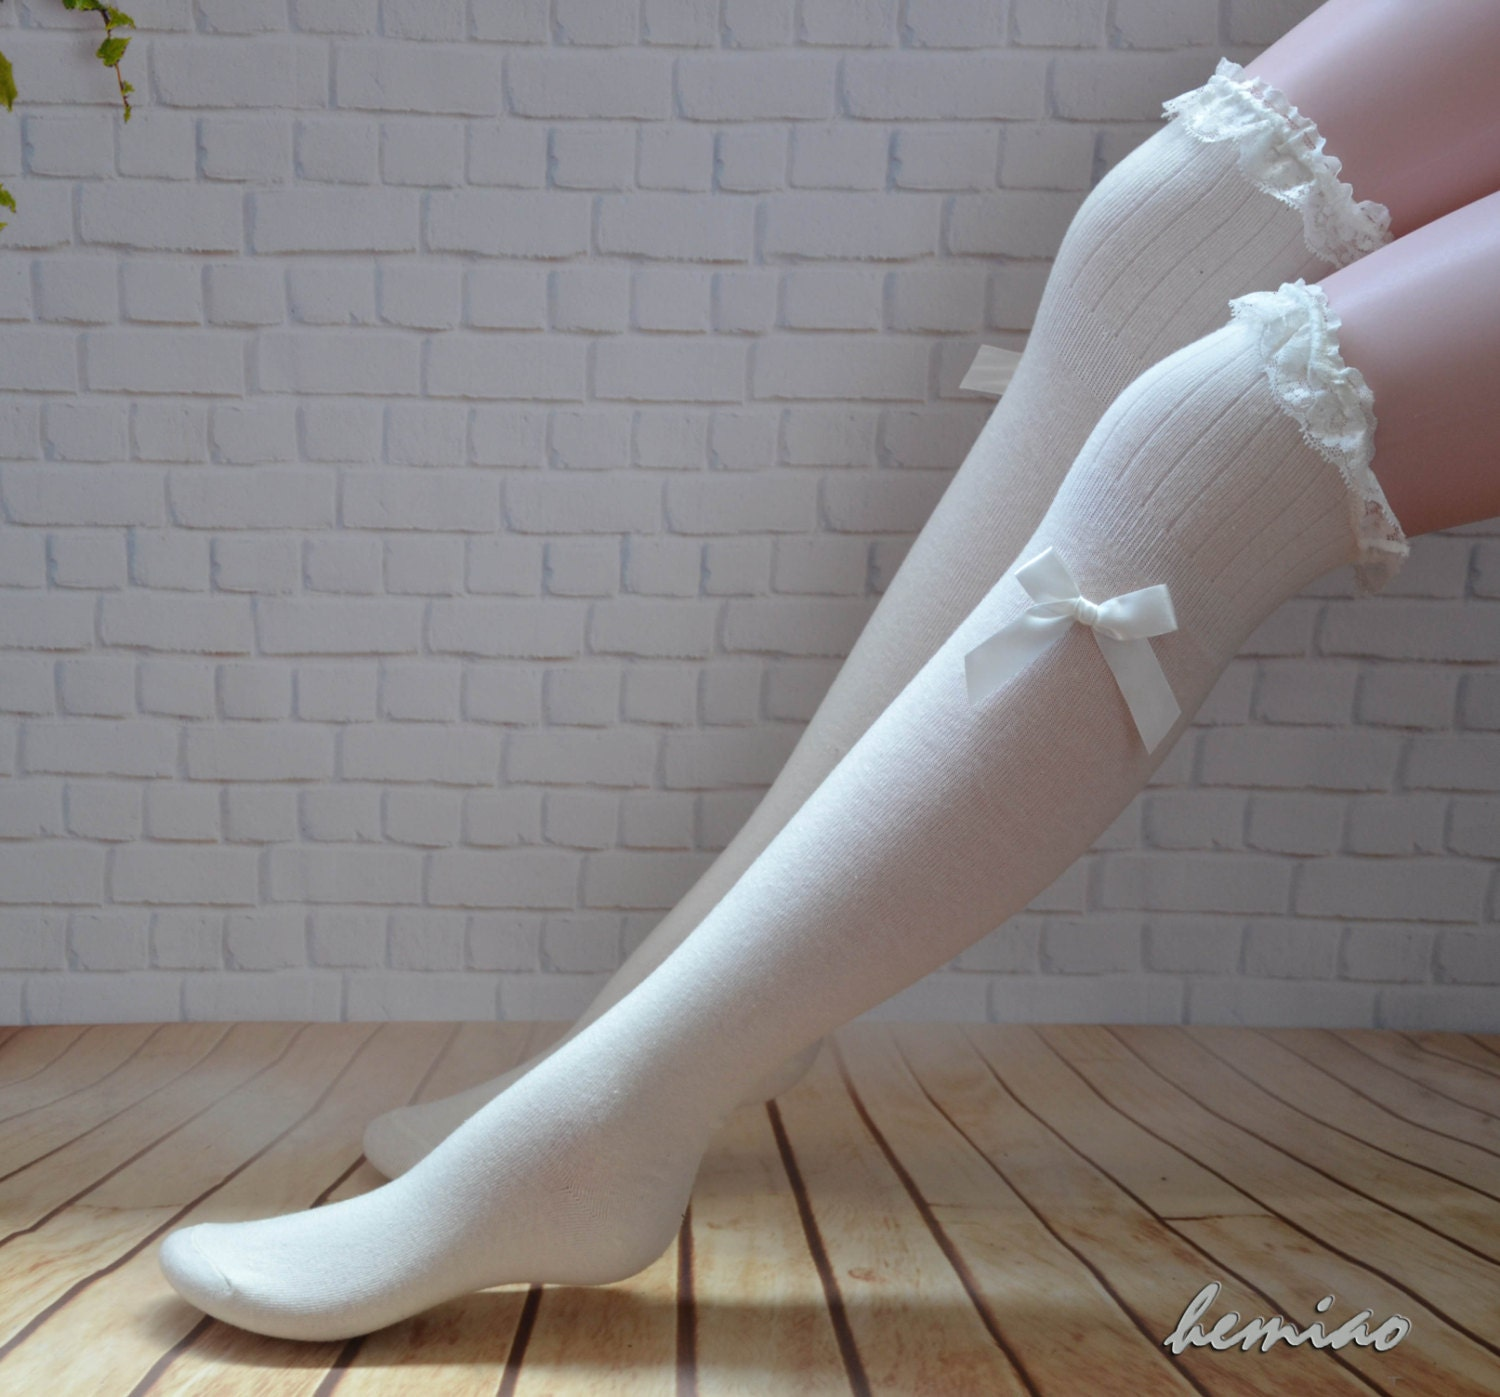 ce05a9e14 White lace top bow socks thigh high socks Knee high socks